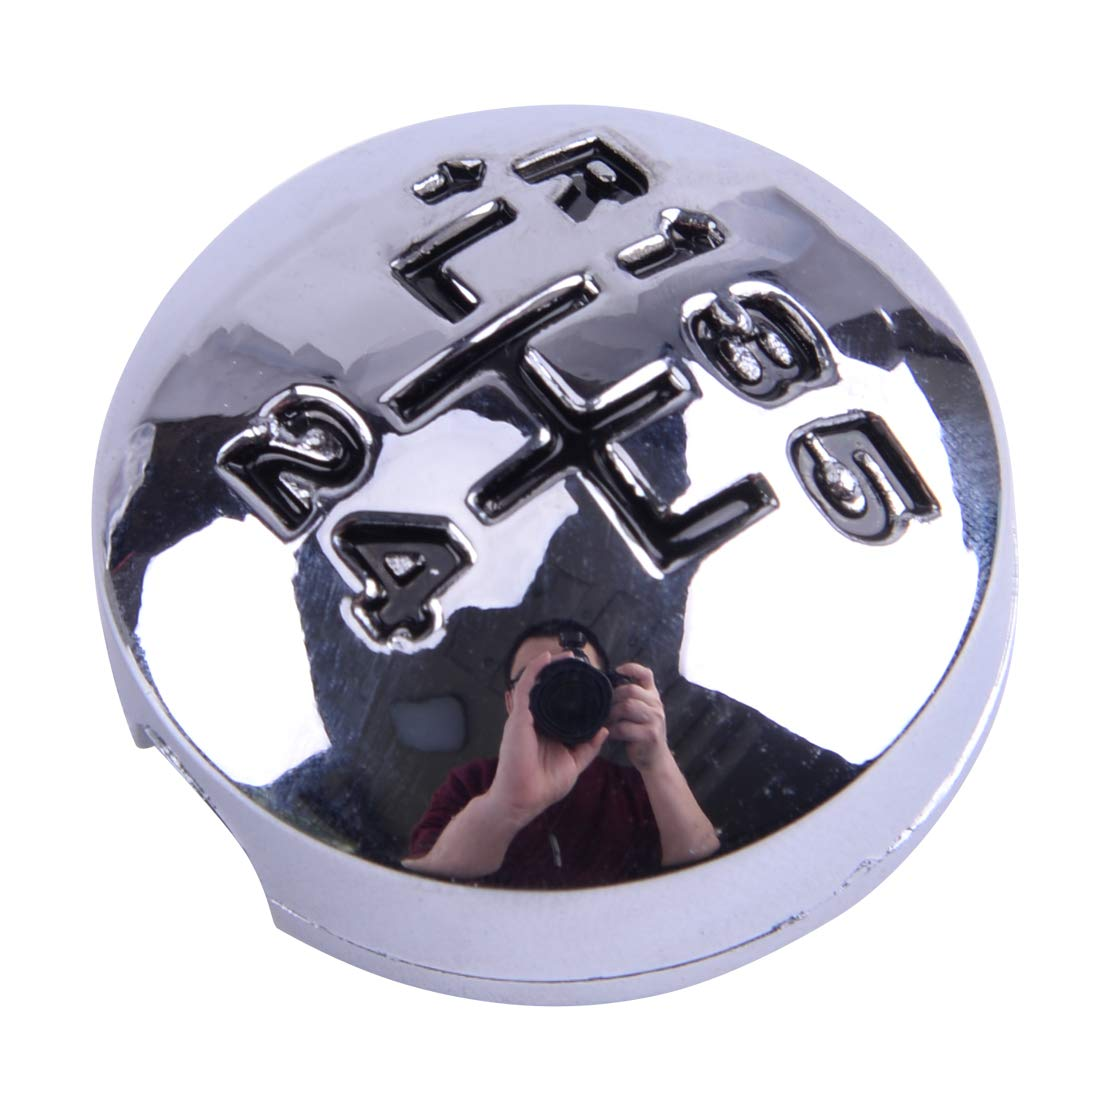 CITALL 6 Speed Gear Shift Knob Cover Cap Top